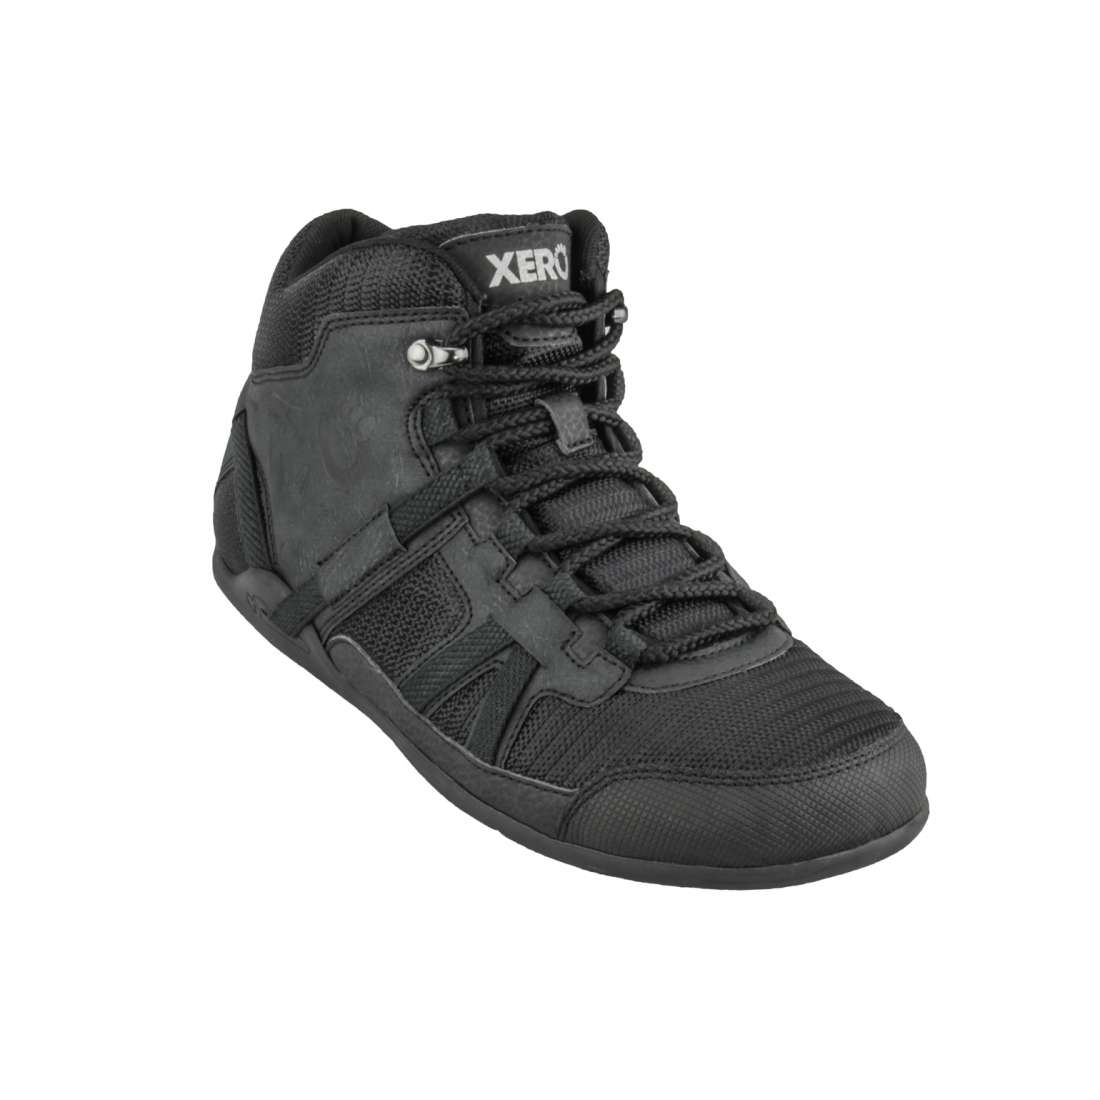 promo code 35df9 07d9a Xero Shoes DayLite Hiker - Men's